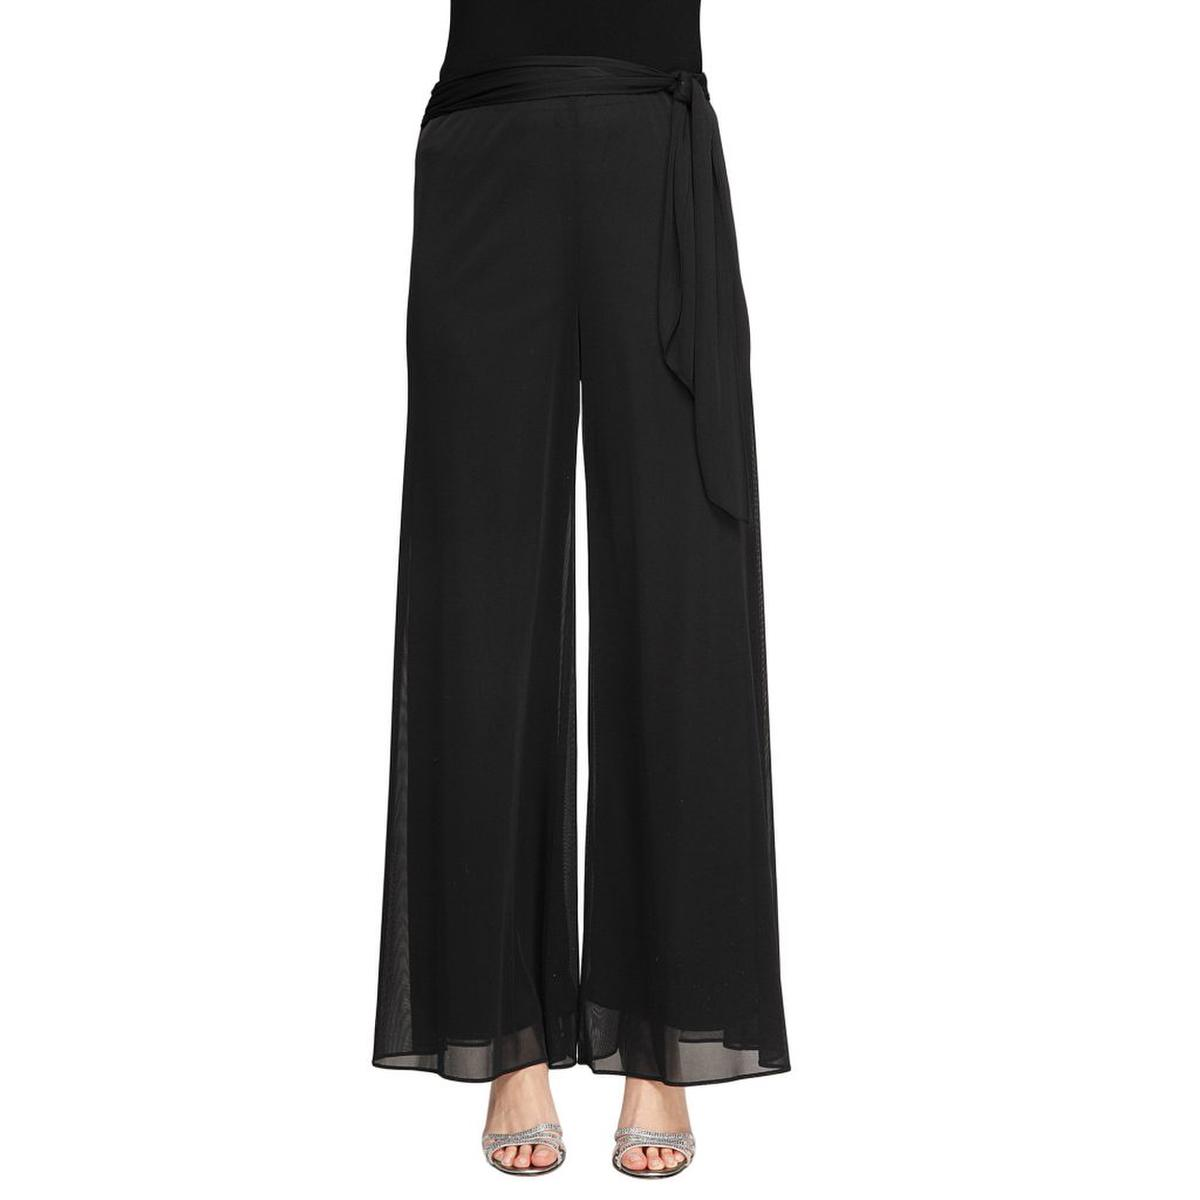 ALEX APPAREL GROUP INC - Chiffon Palazzo Pants with Tie Waist